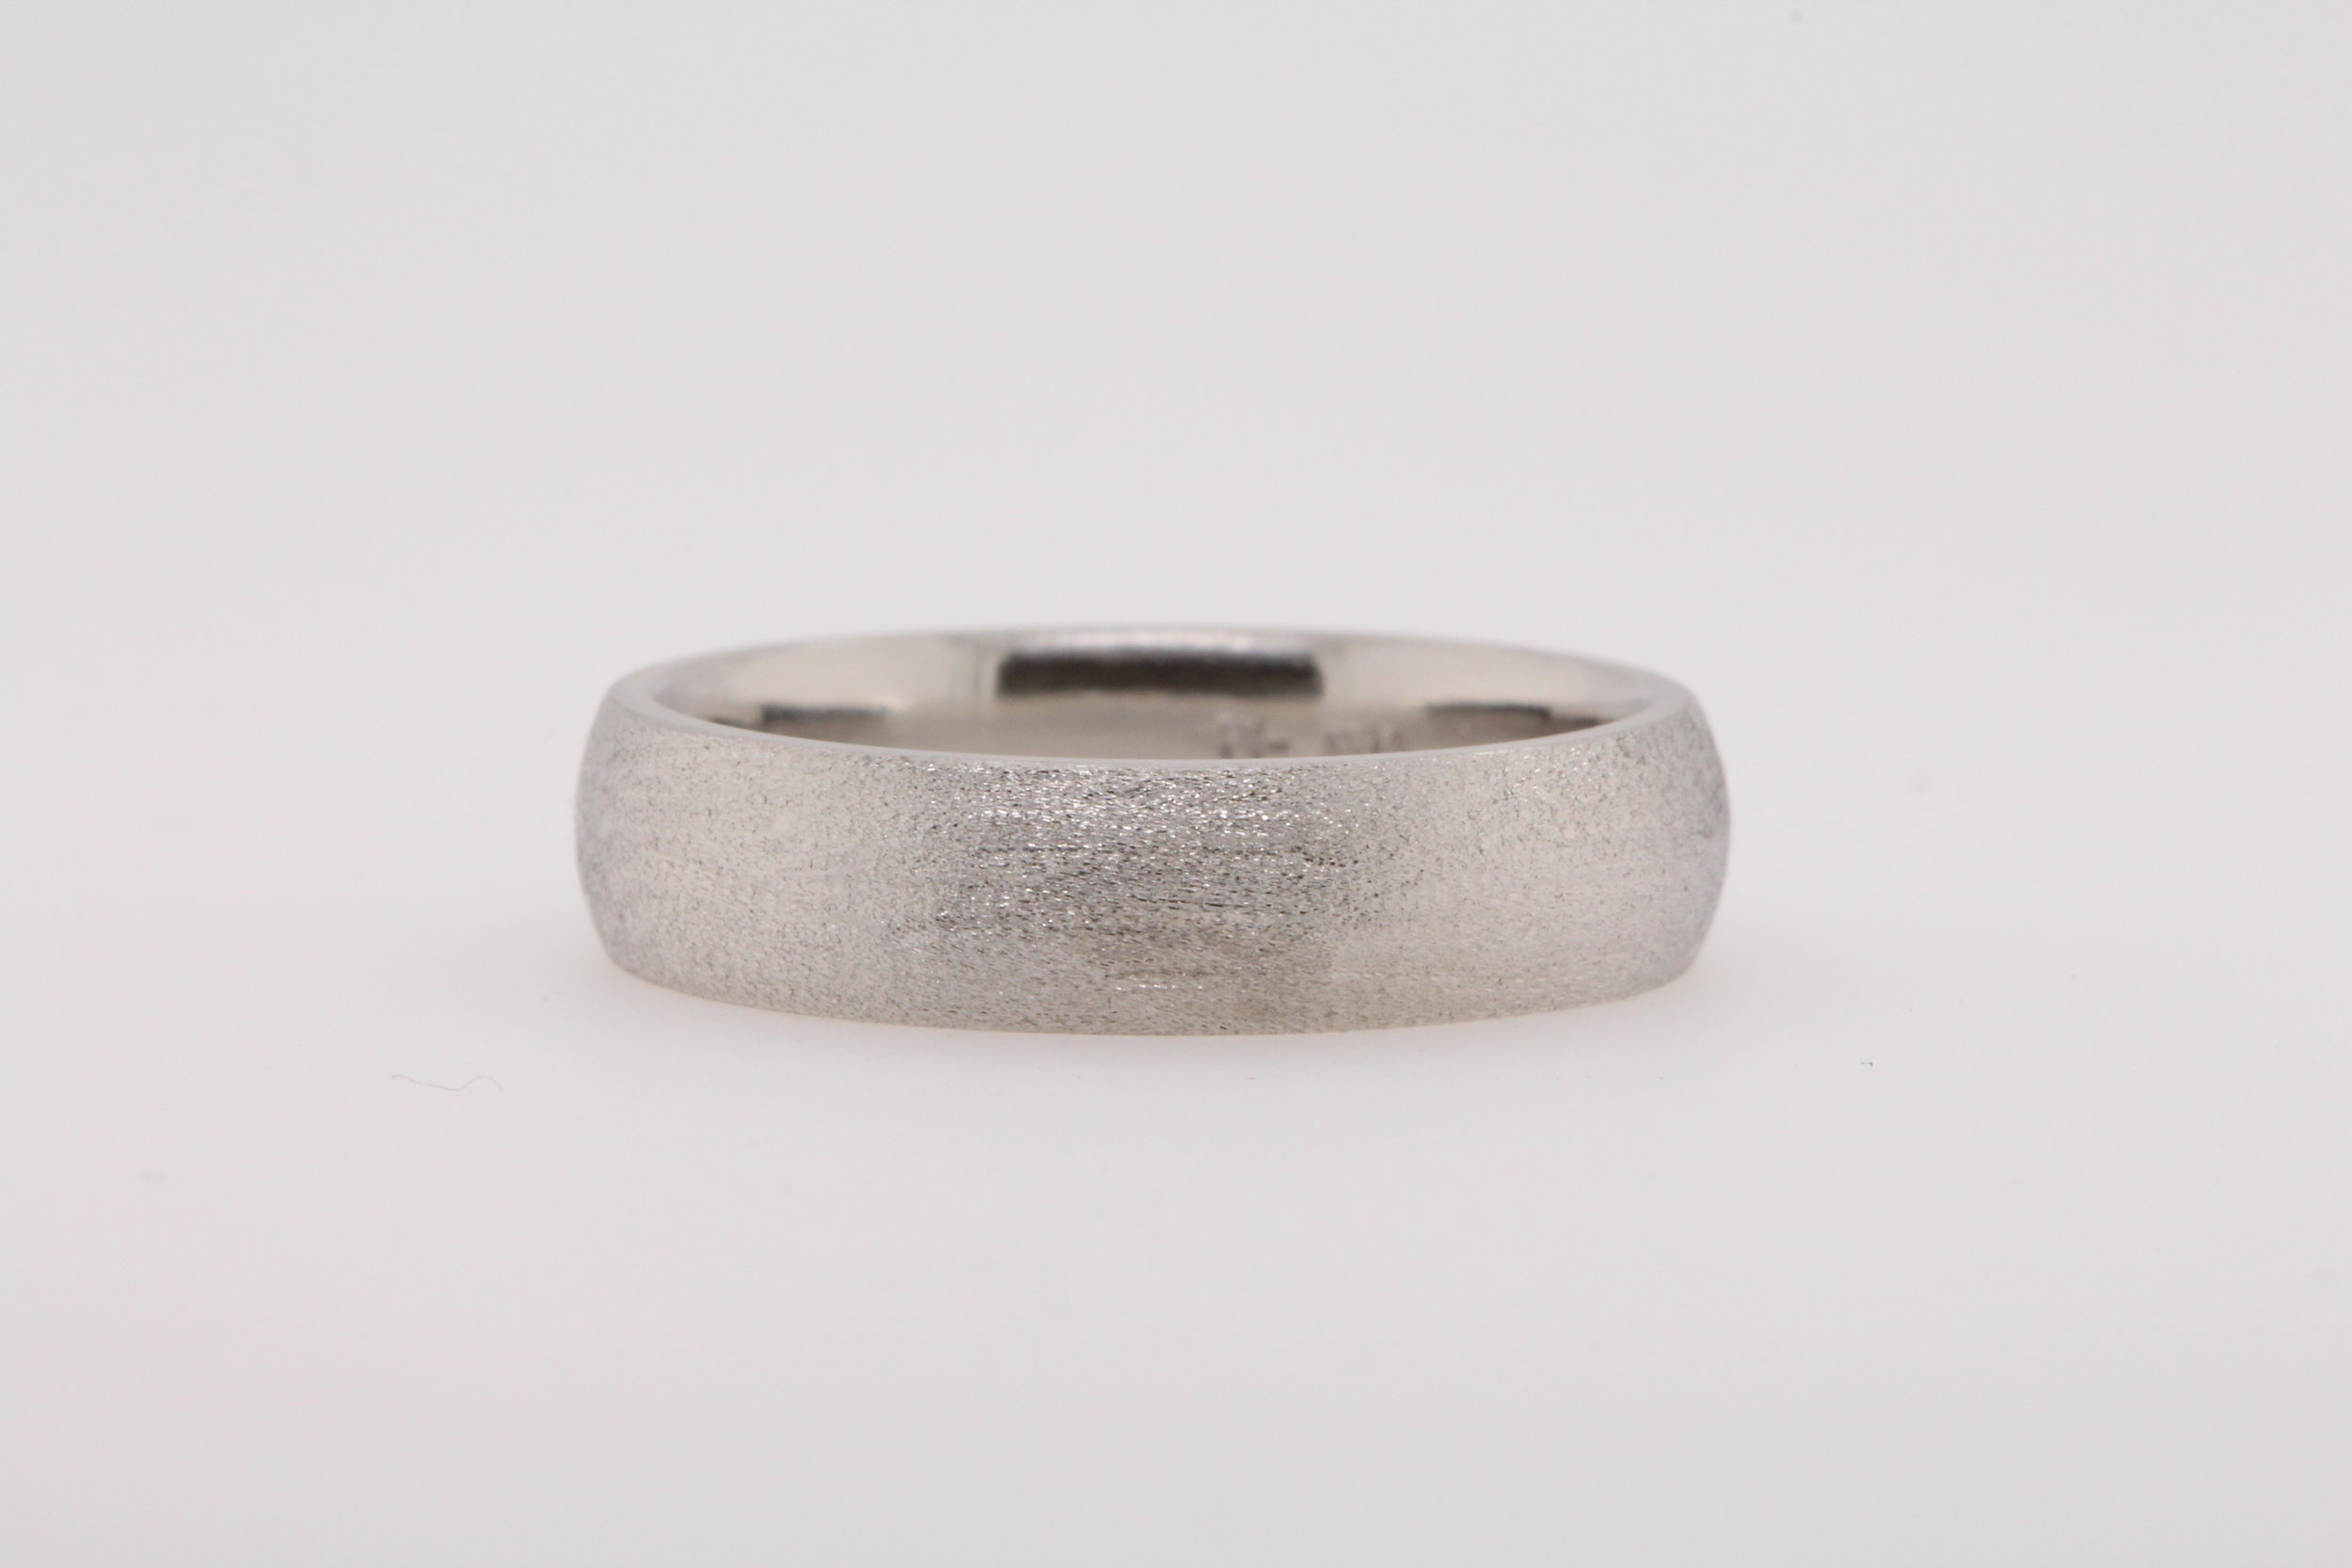 Brad's brushed wedding band is practical to wear.